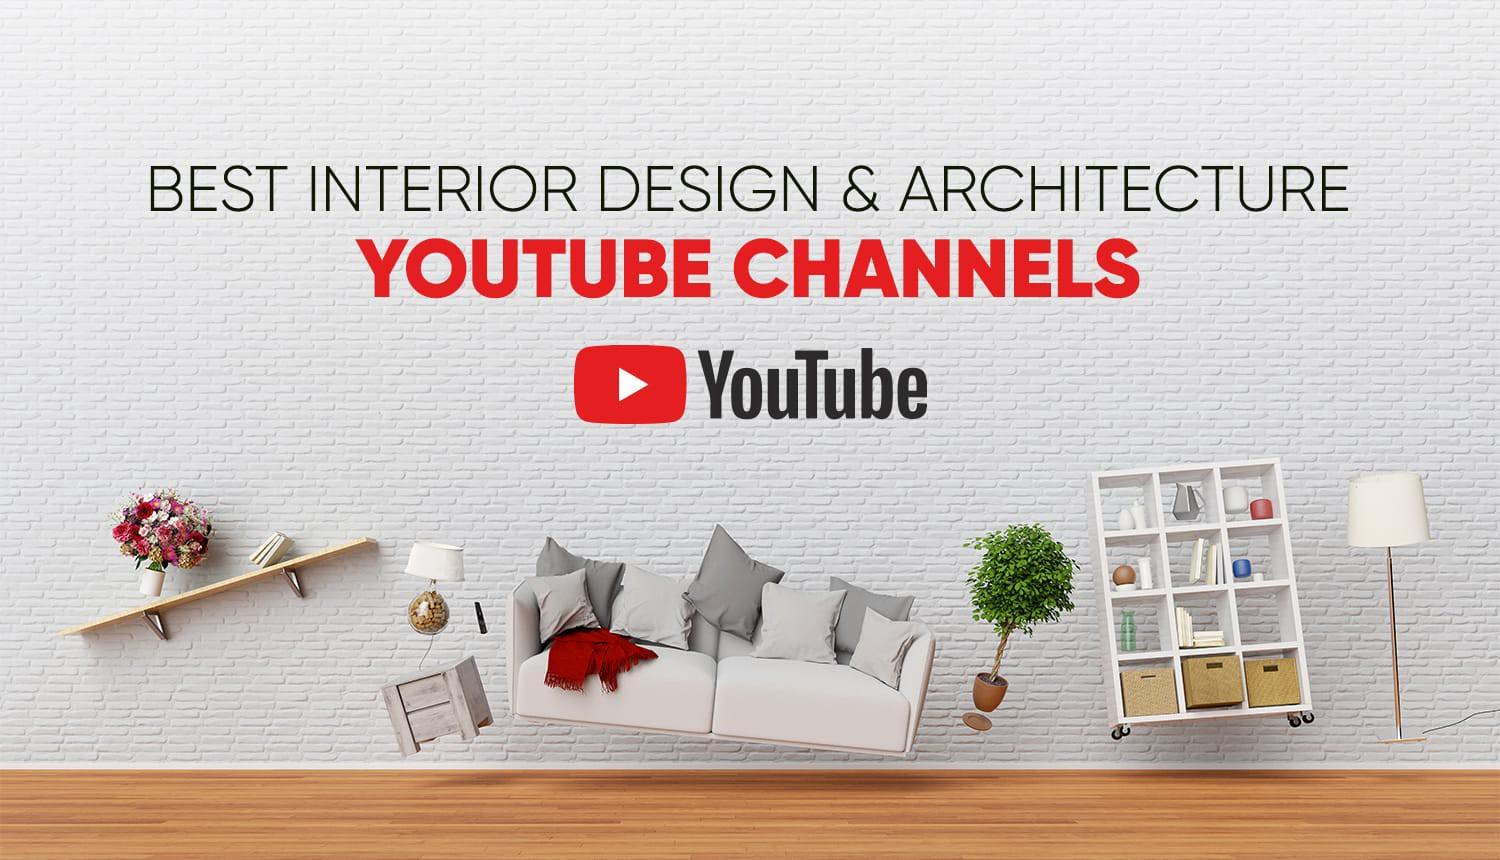 Best Interior Design And Architecture Youtube Channels By White On White White On White Medium